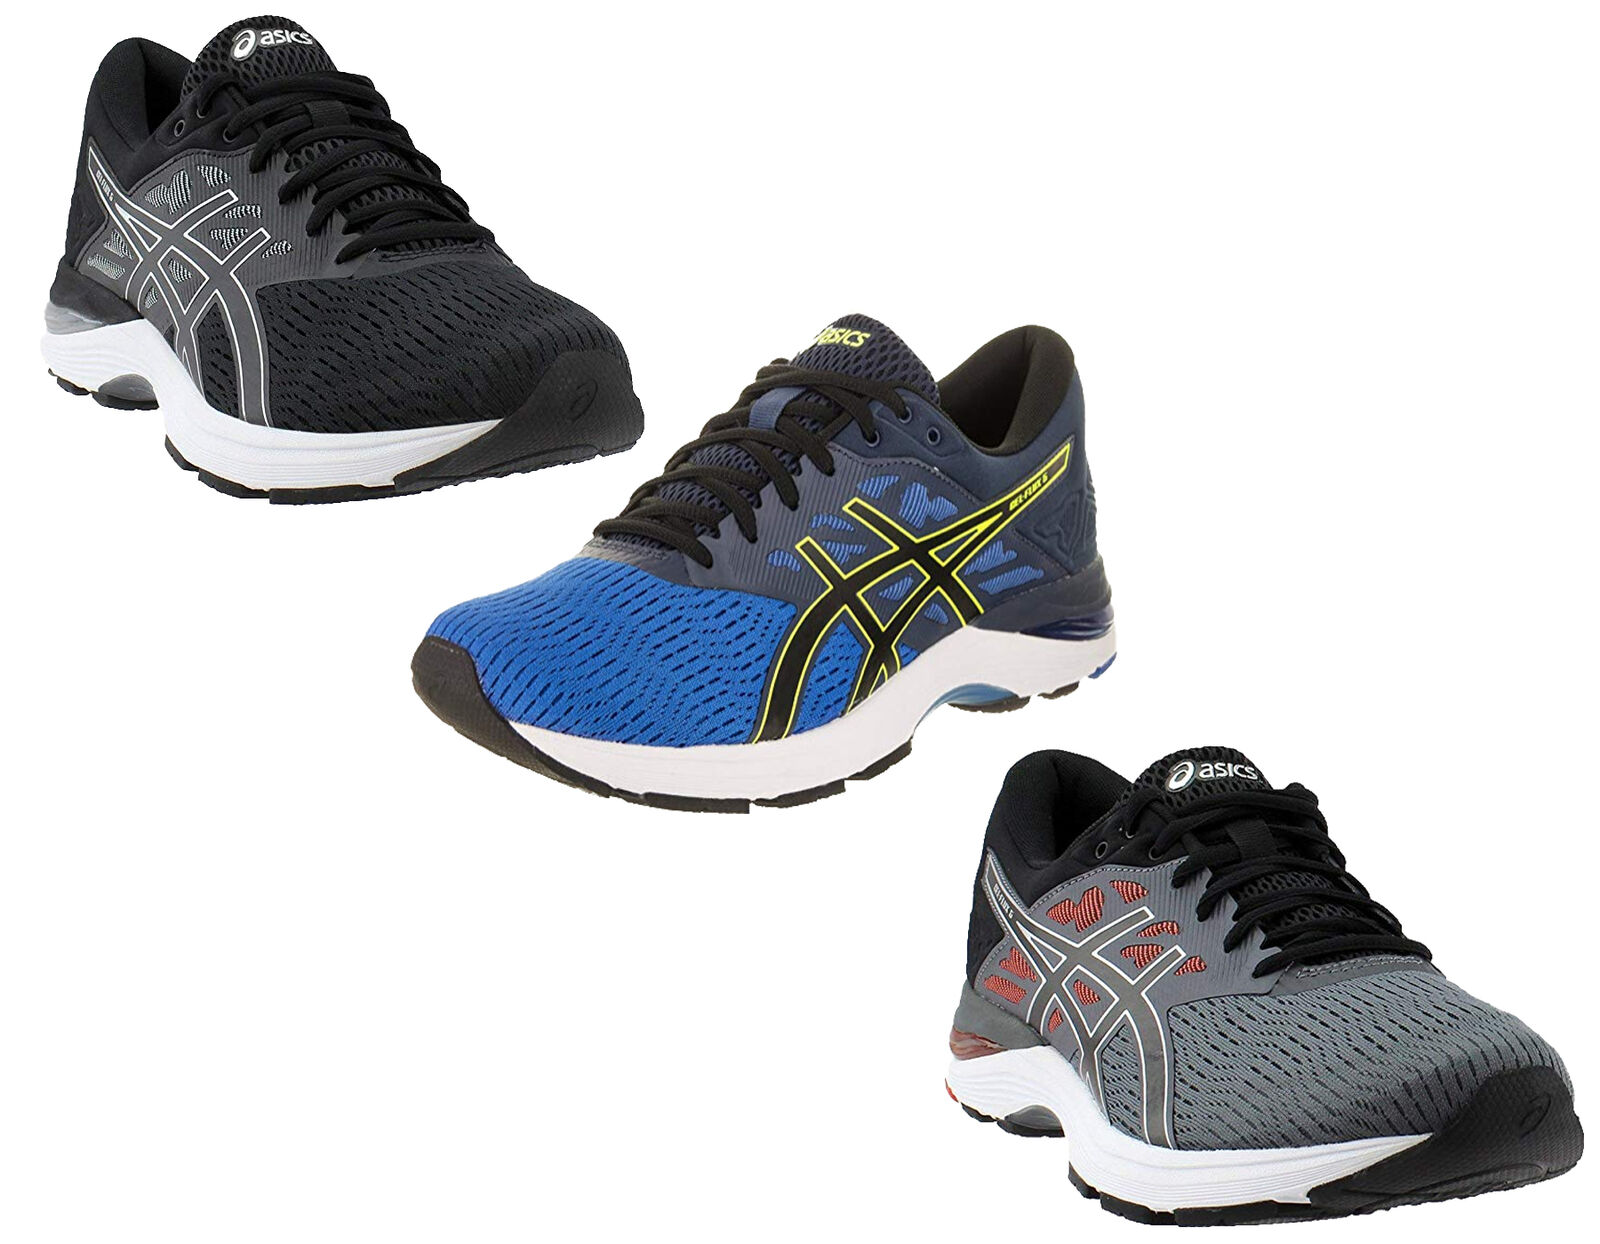 ASICS Men's Gel-Flux 5 Running shoes, color Options